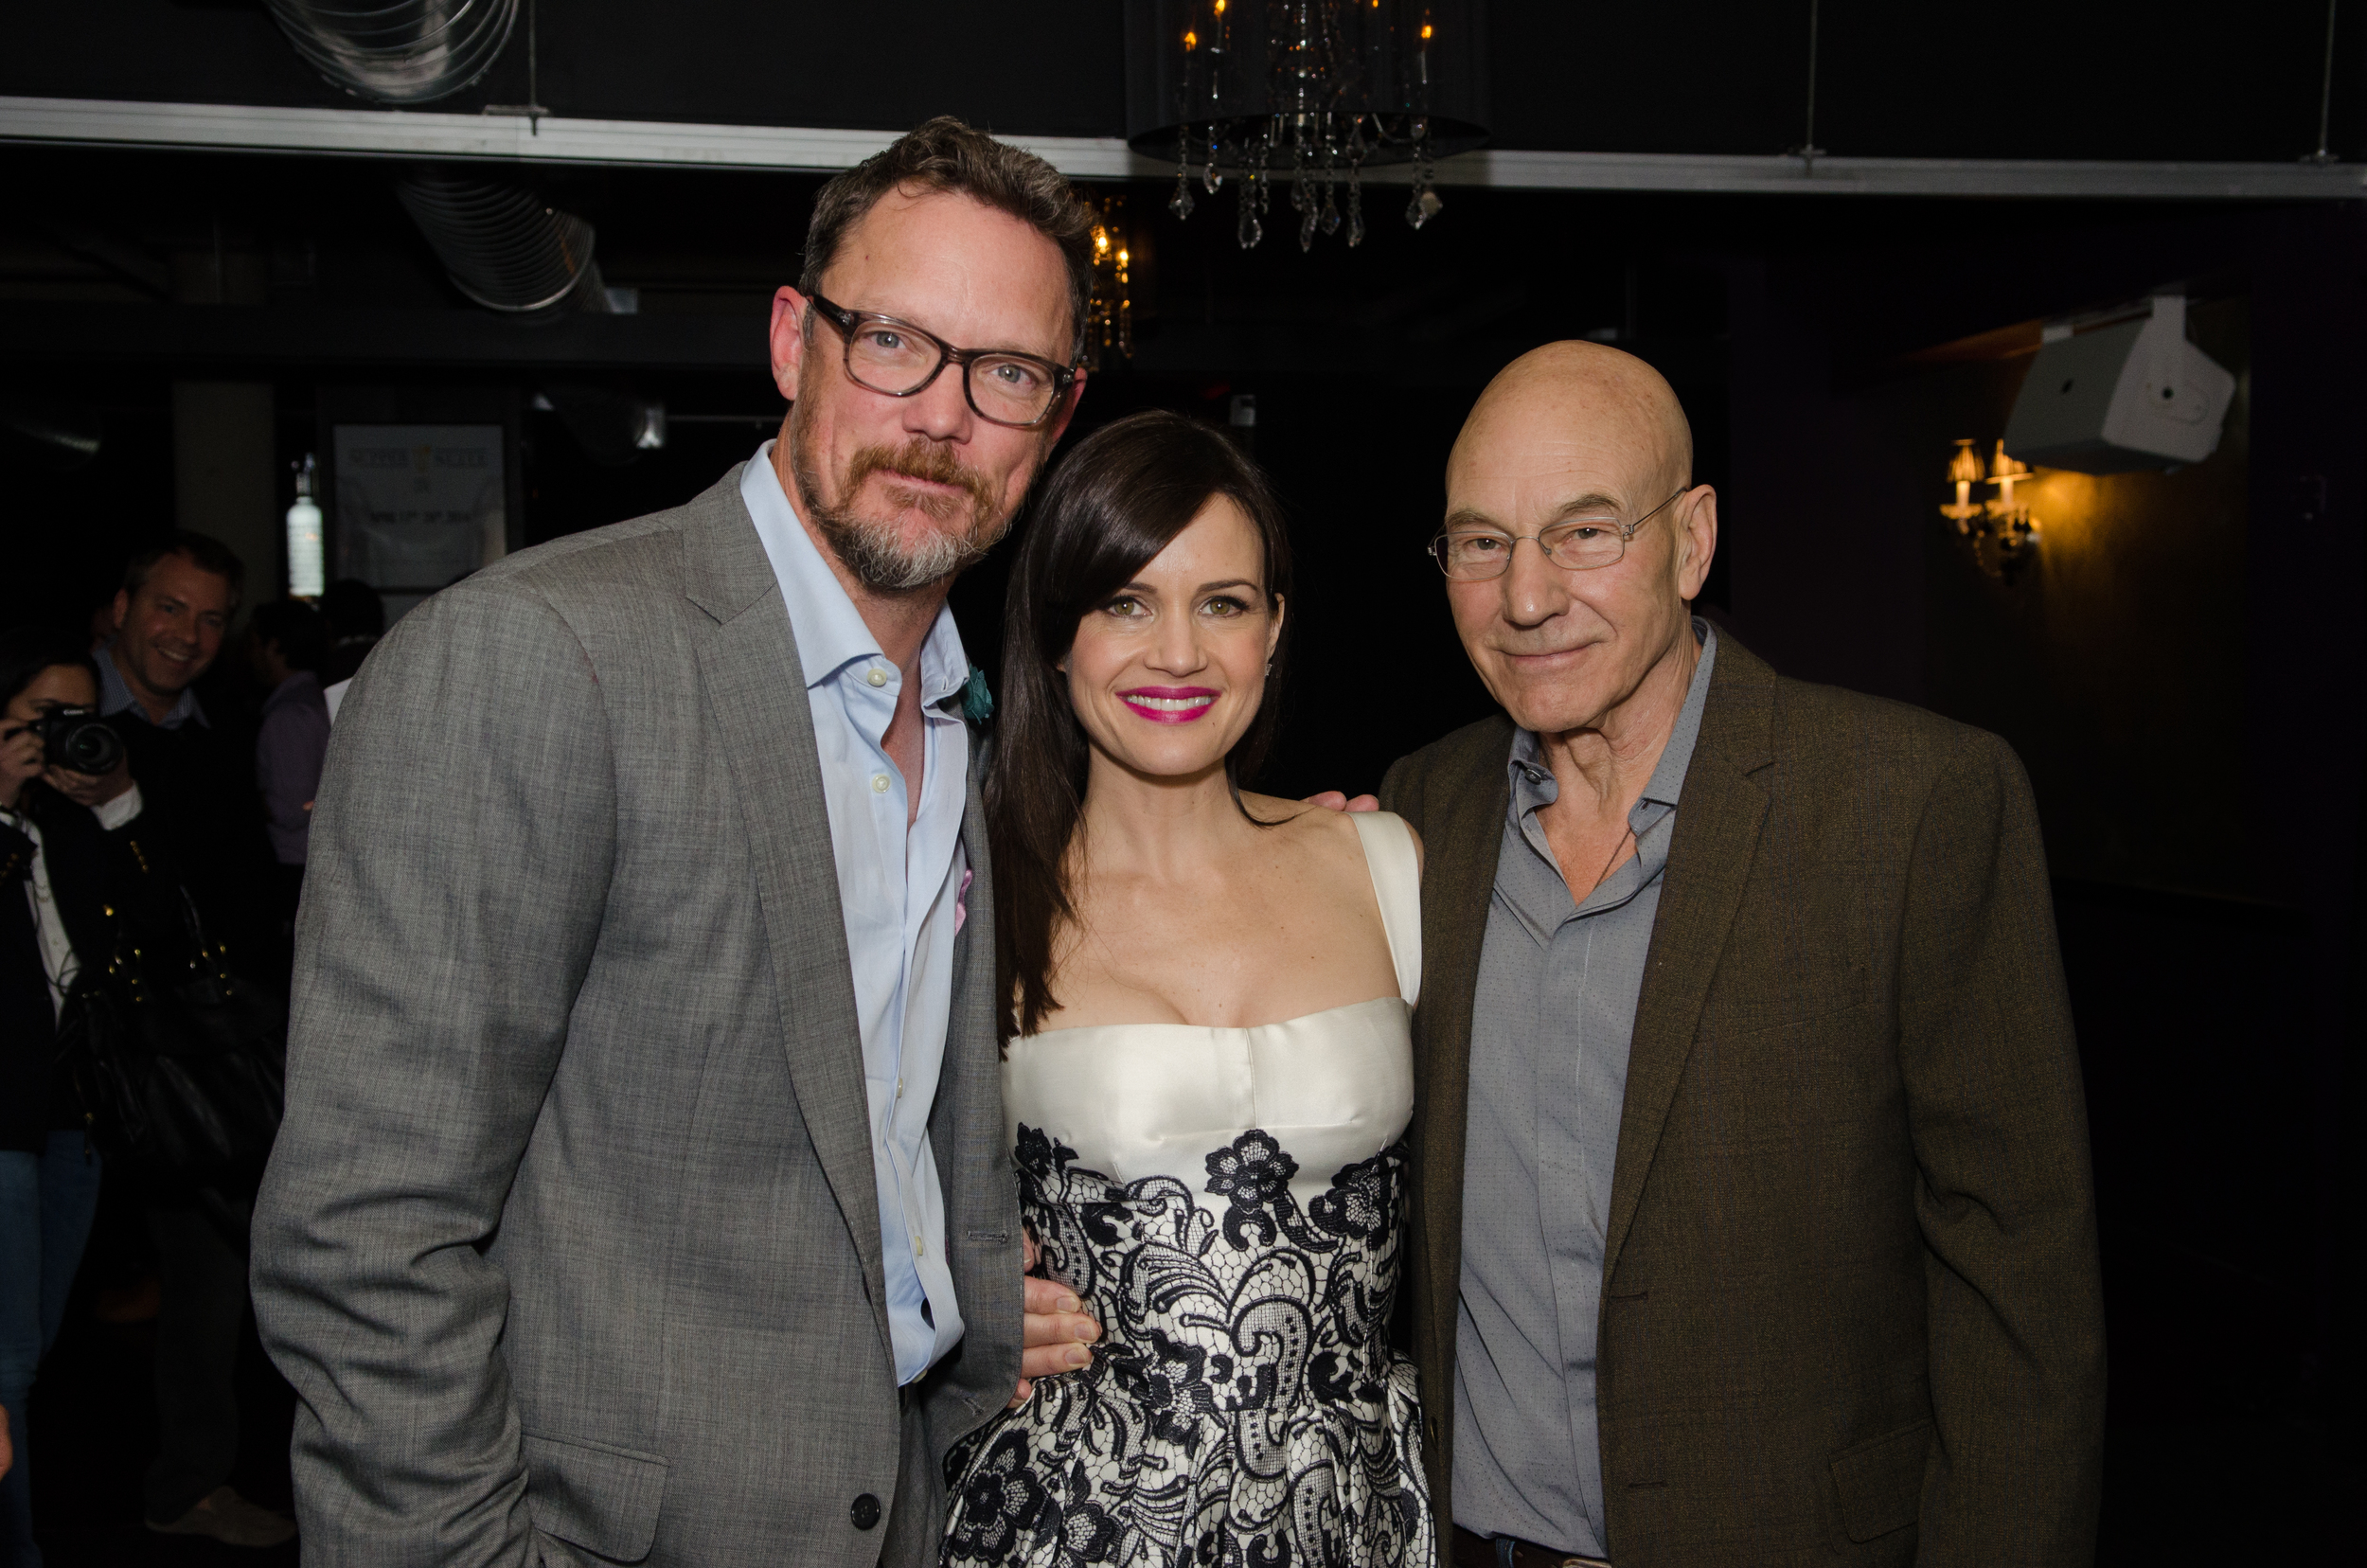 Matthew Lillard  [Scooby-Doo],  Carla Gugino  [Night at the Museum], and  Patrick Stewart  [Star Trek, X-Men] @ 'MATCH' Cast Pre-Premiere Party At Supper Suite By STK Hosted With Fiji Water And Dobel Tequila